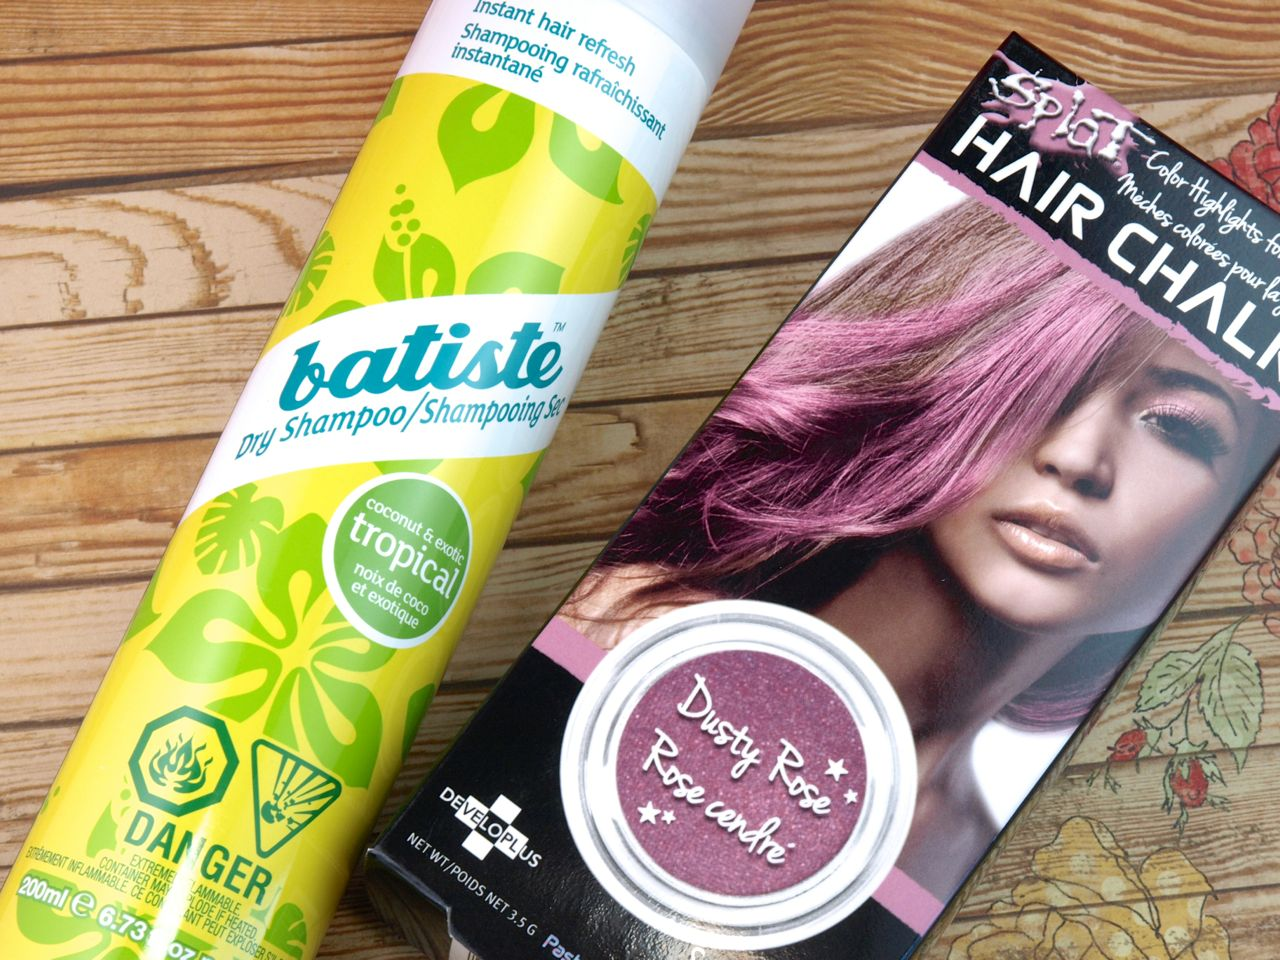 Summer Hair Essentials Featuring Batiste Dry Shampoo And Splat Hair